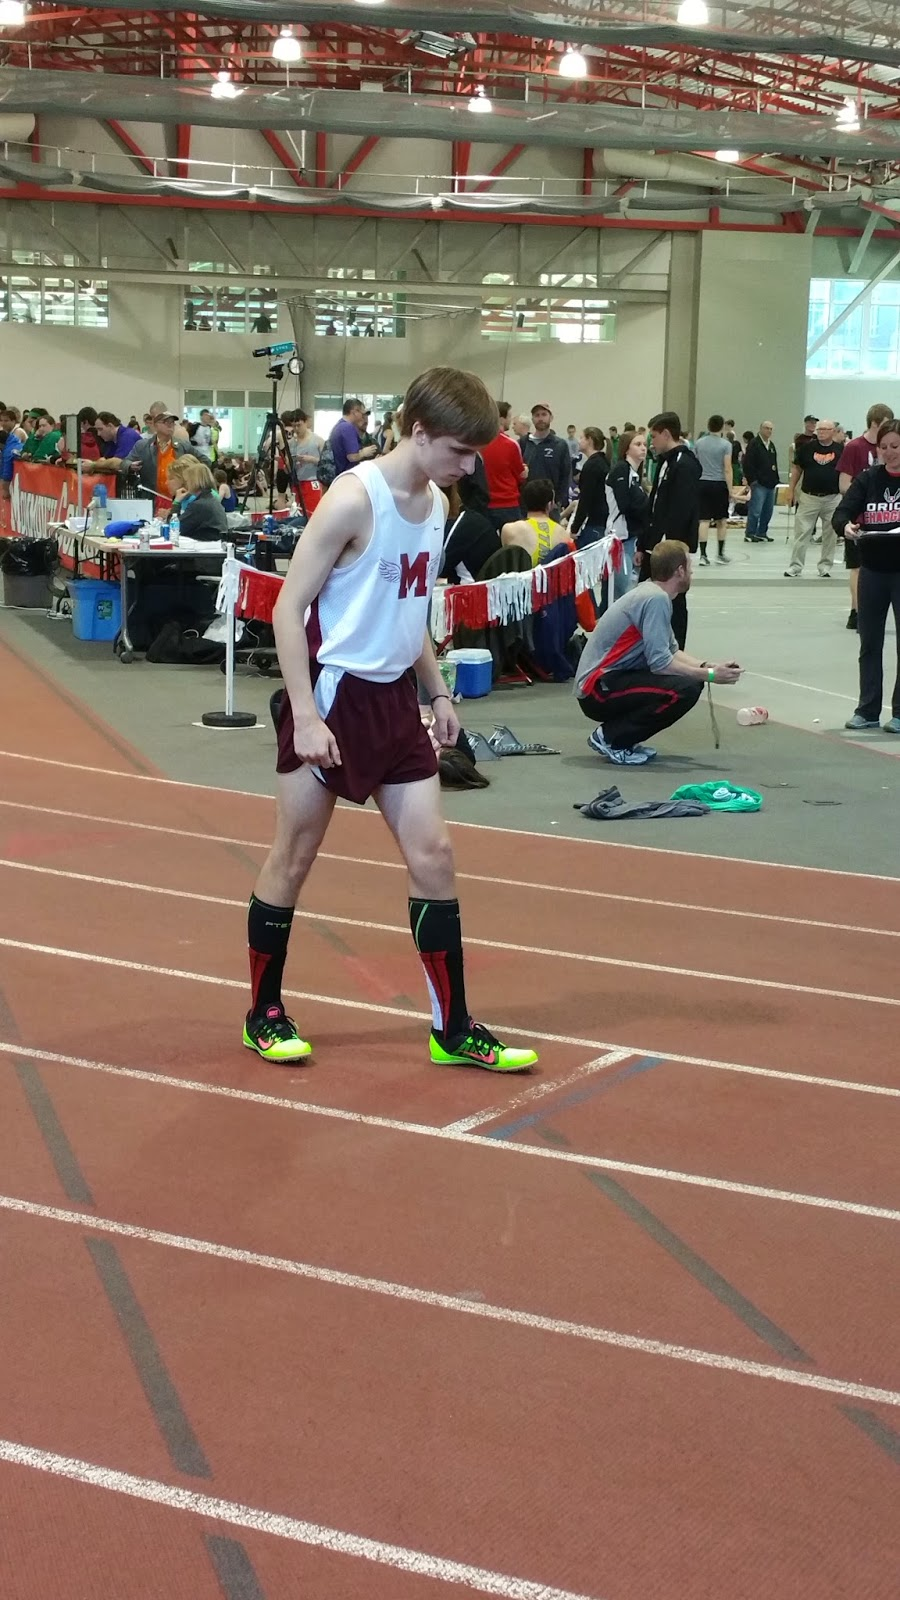 rockland community college track meet results 2015